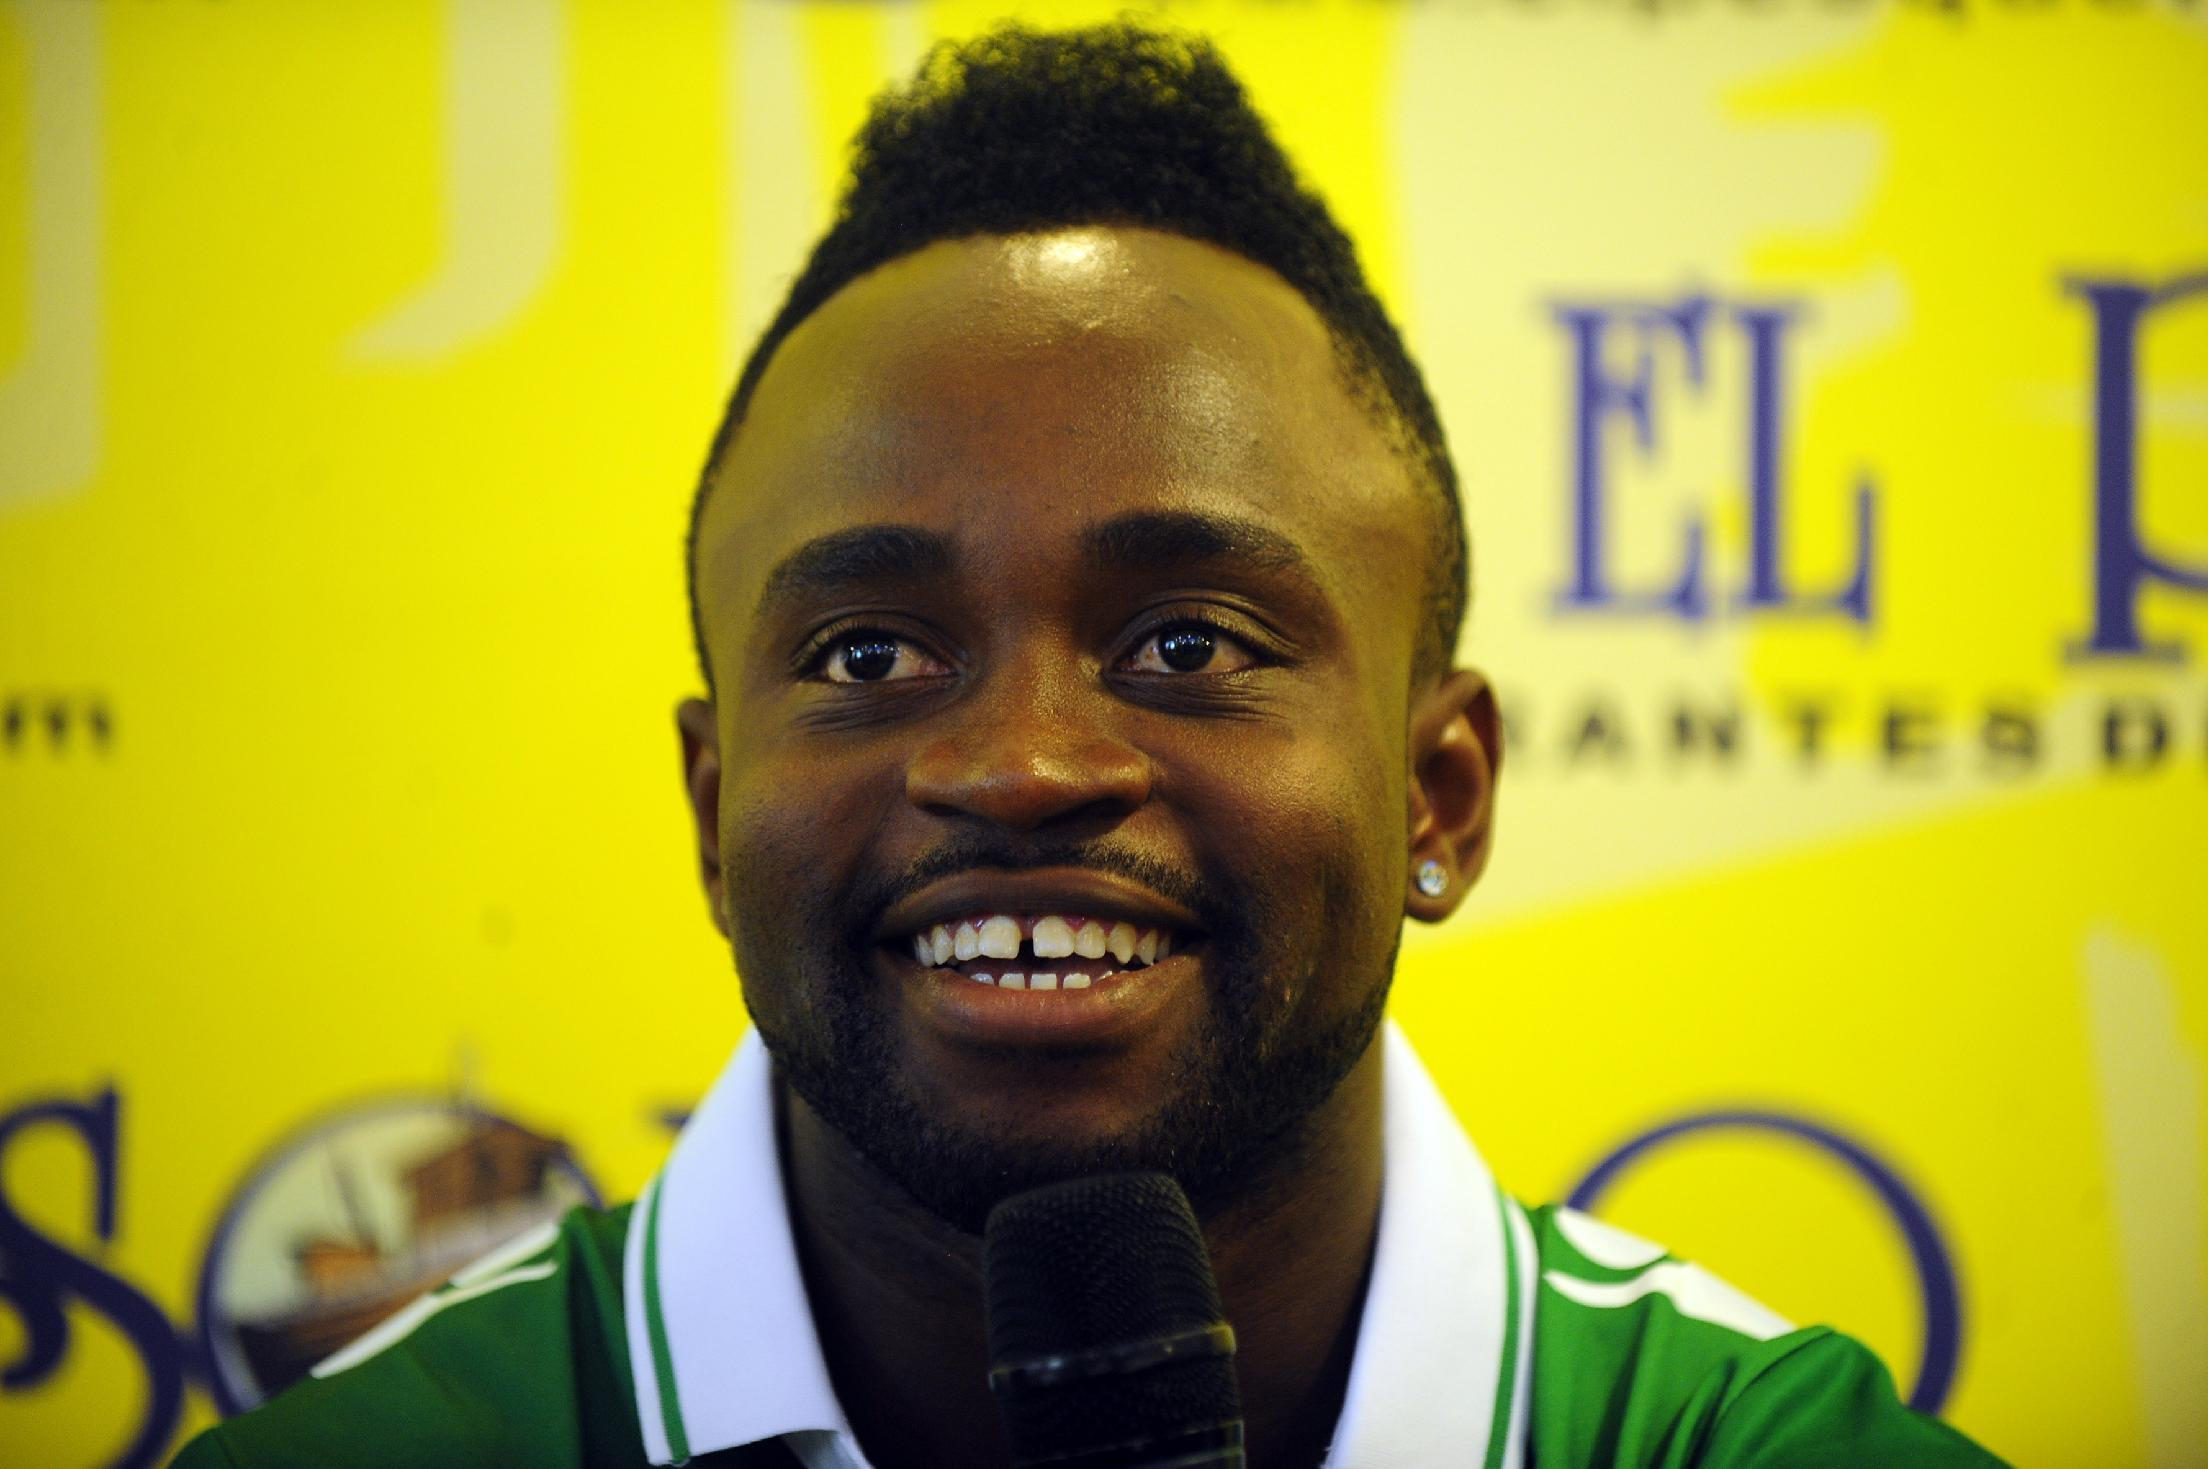 Congolese striker Mabwati exits Spain for MLS